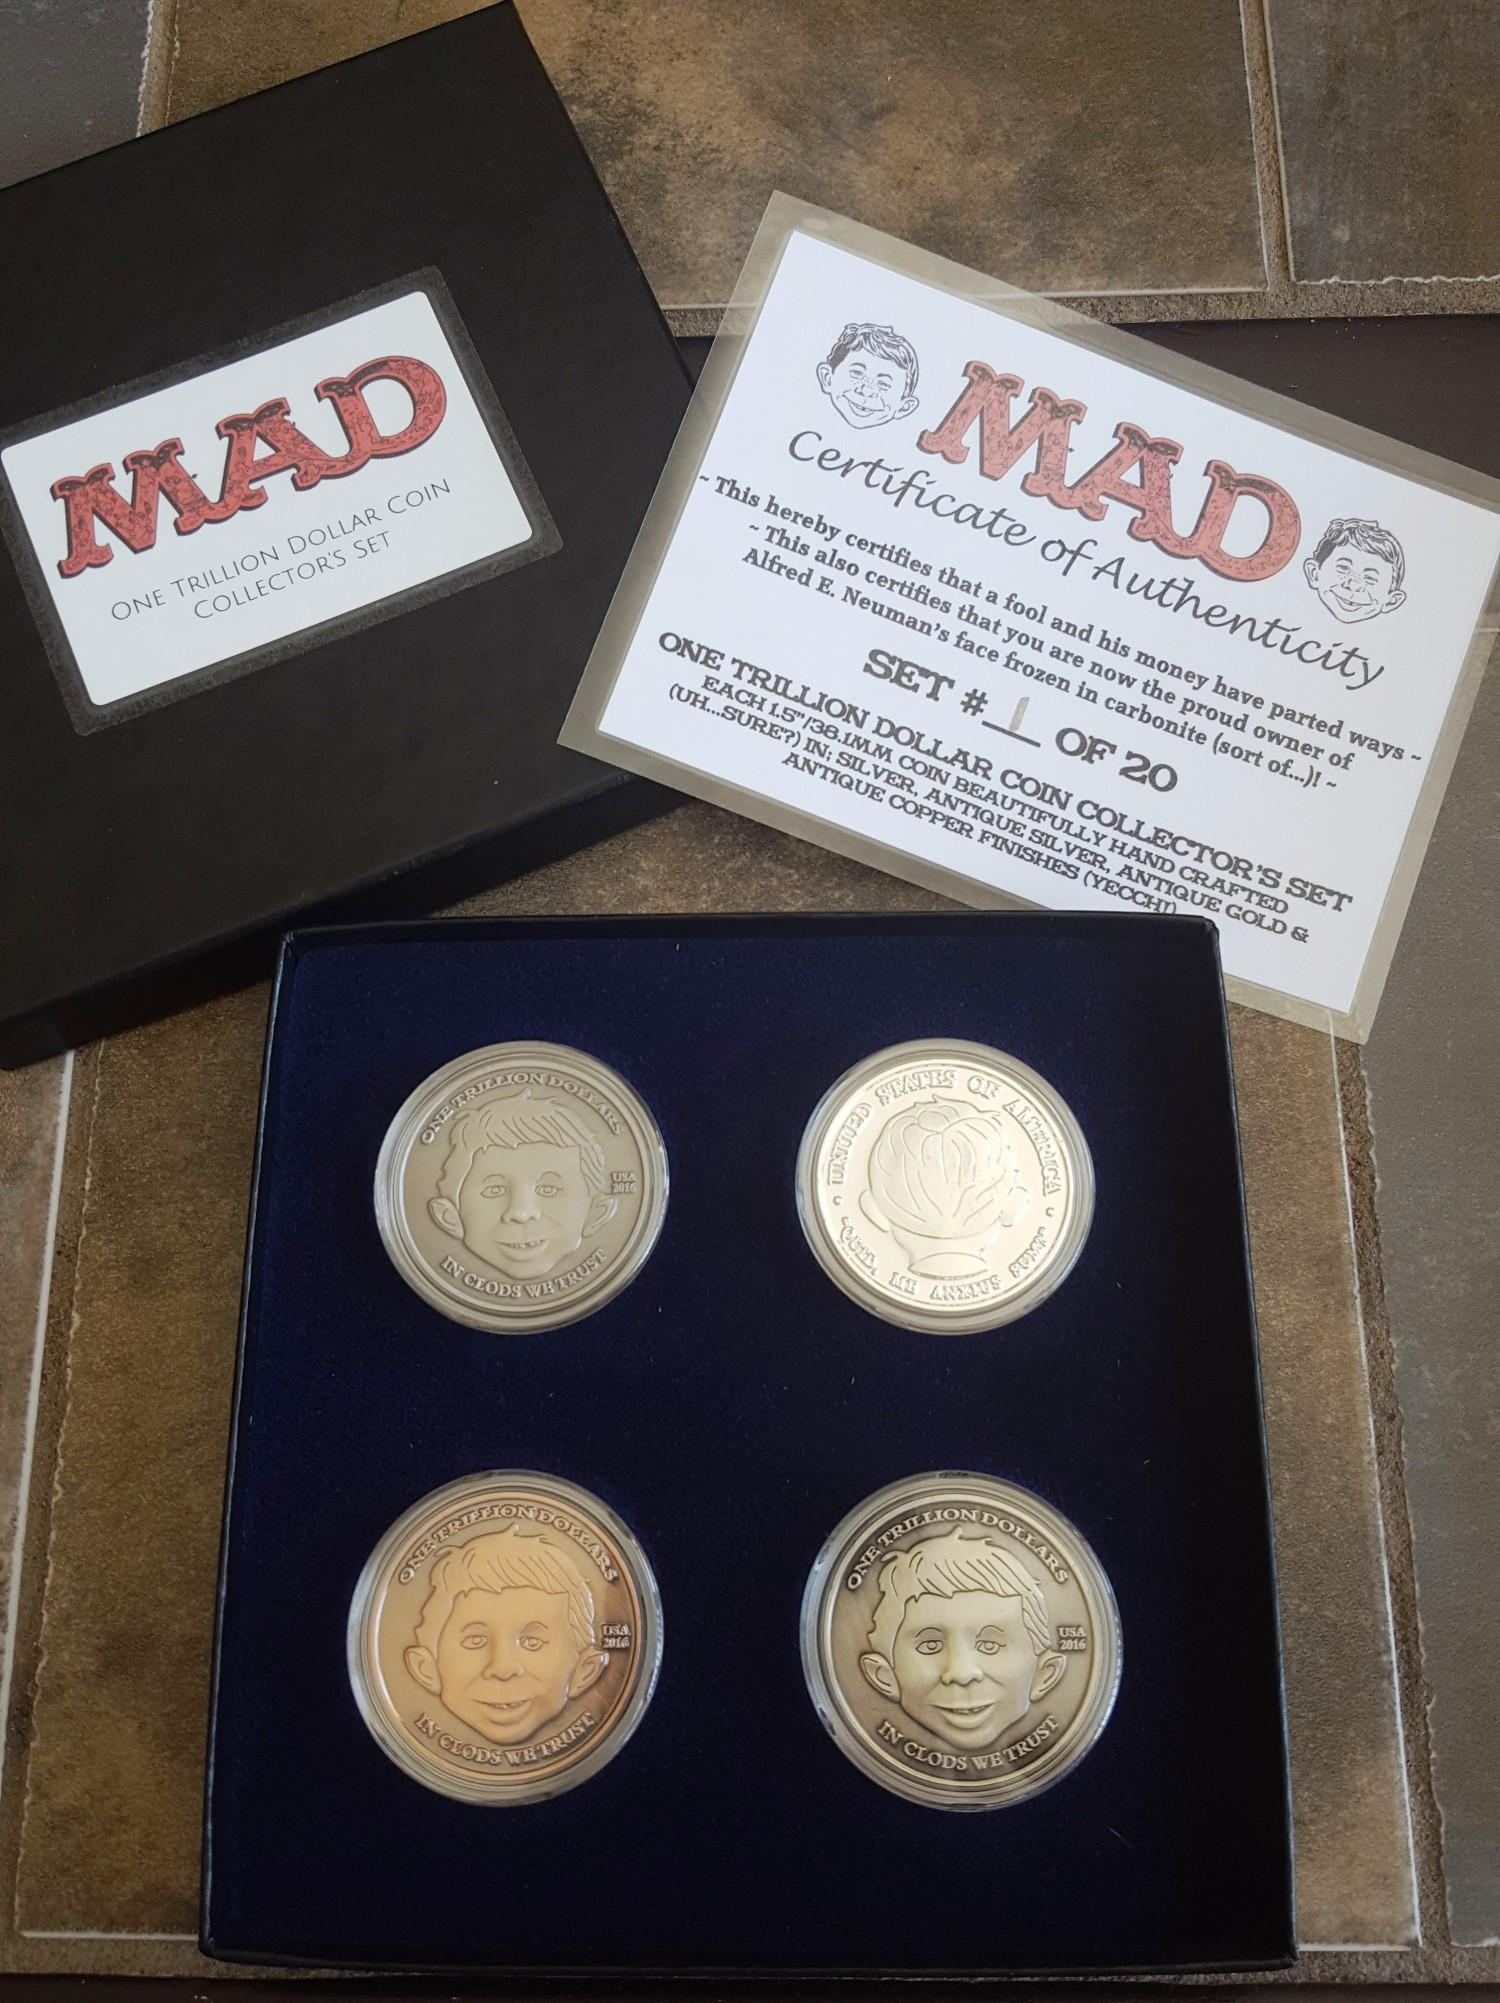 One Trillion Dollar Coin Collector's Set • USA